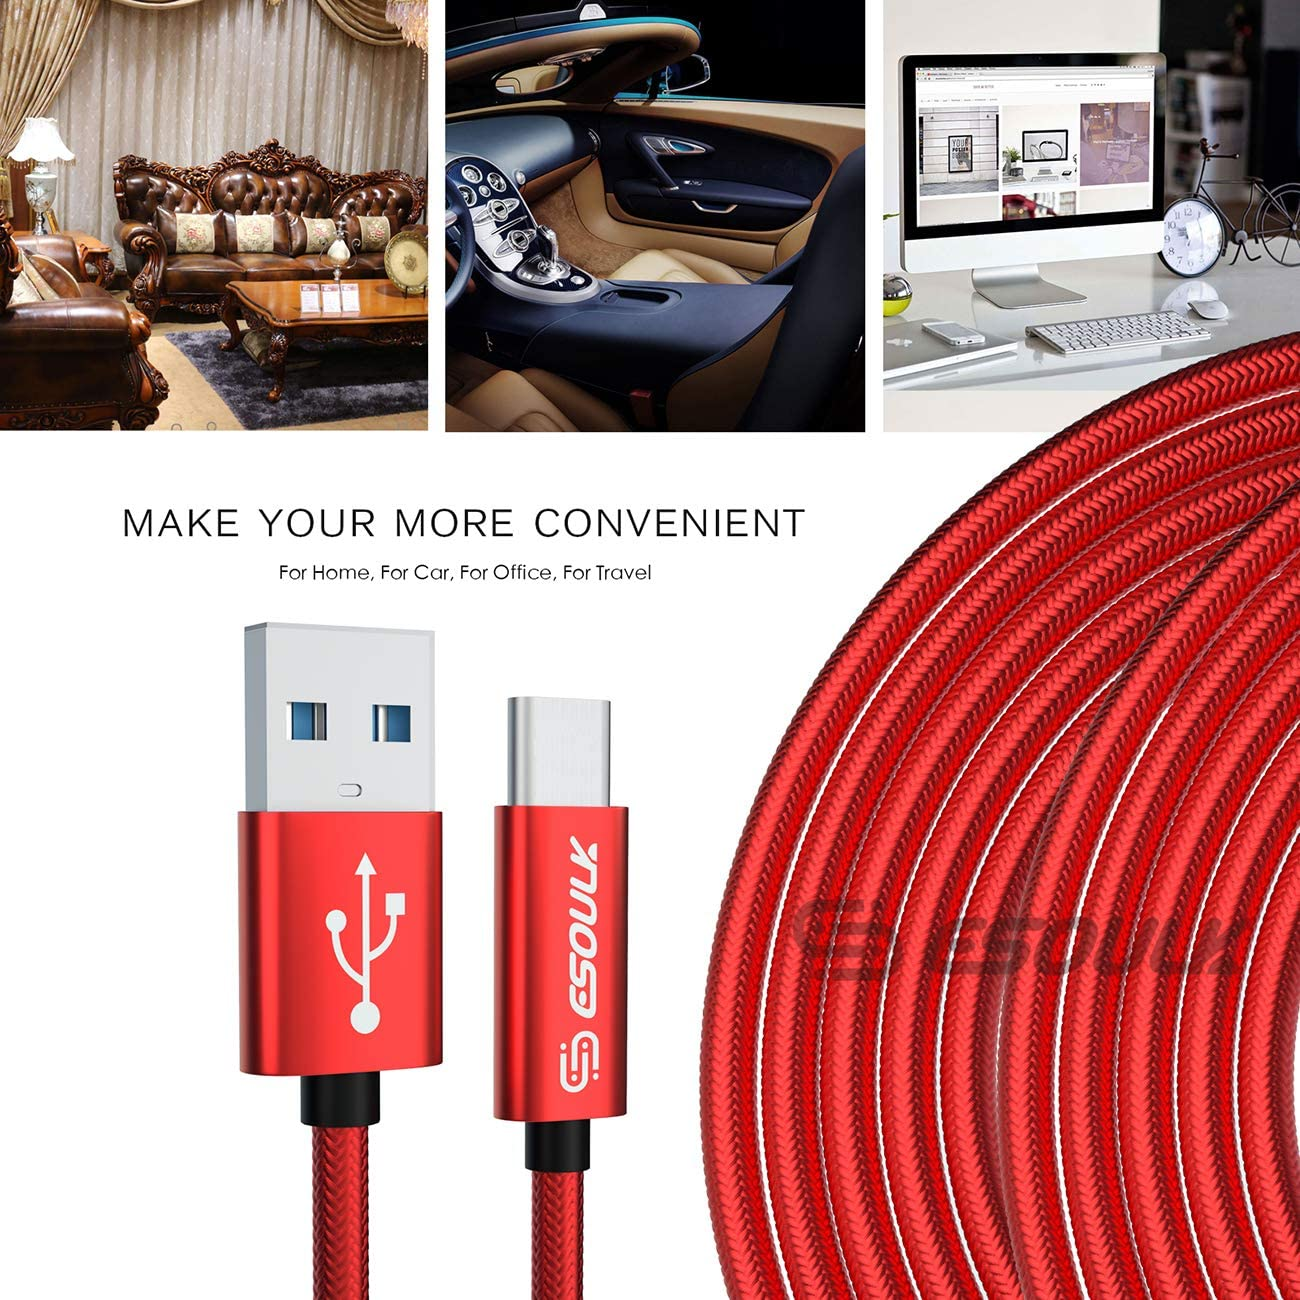 Esoulk 1.7A 10 ft USB Cable for Type-C Red